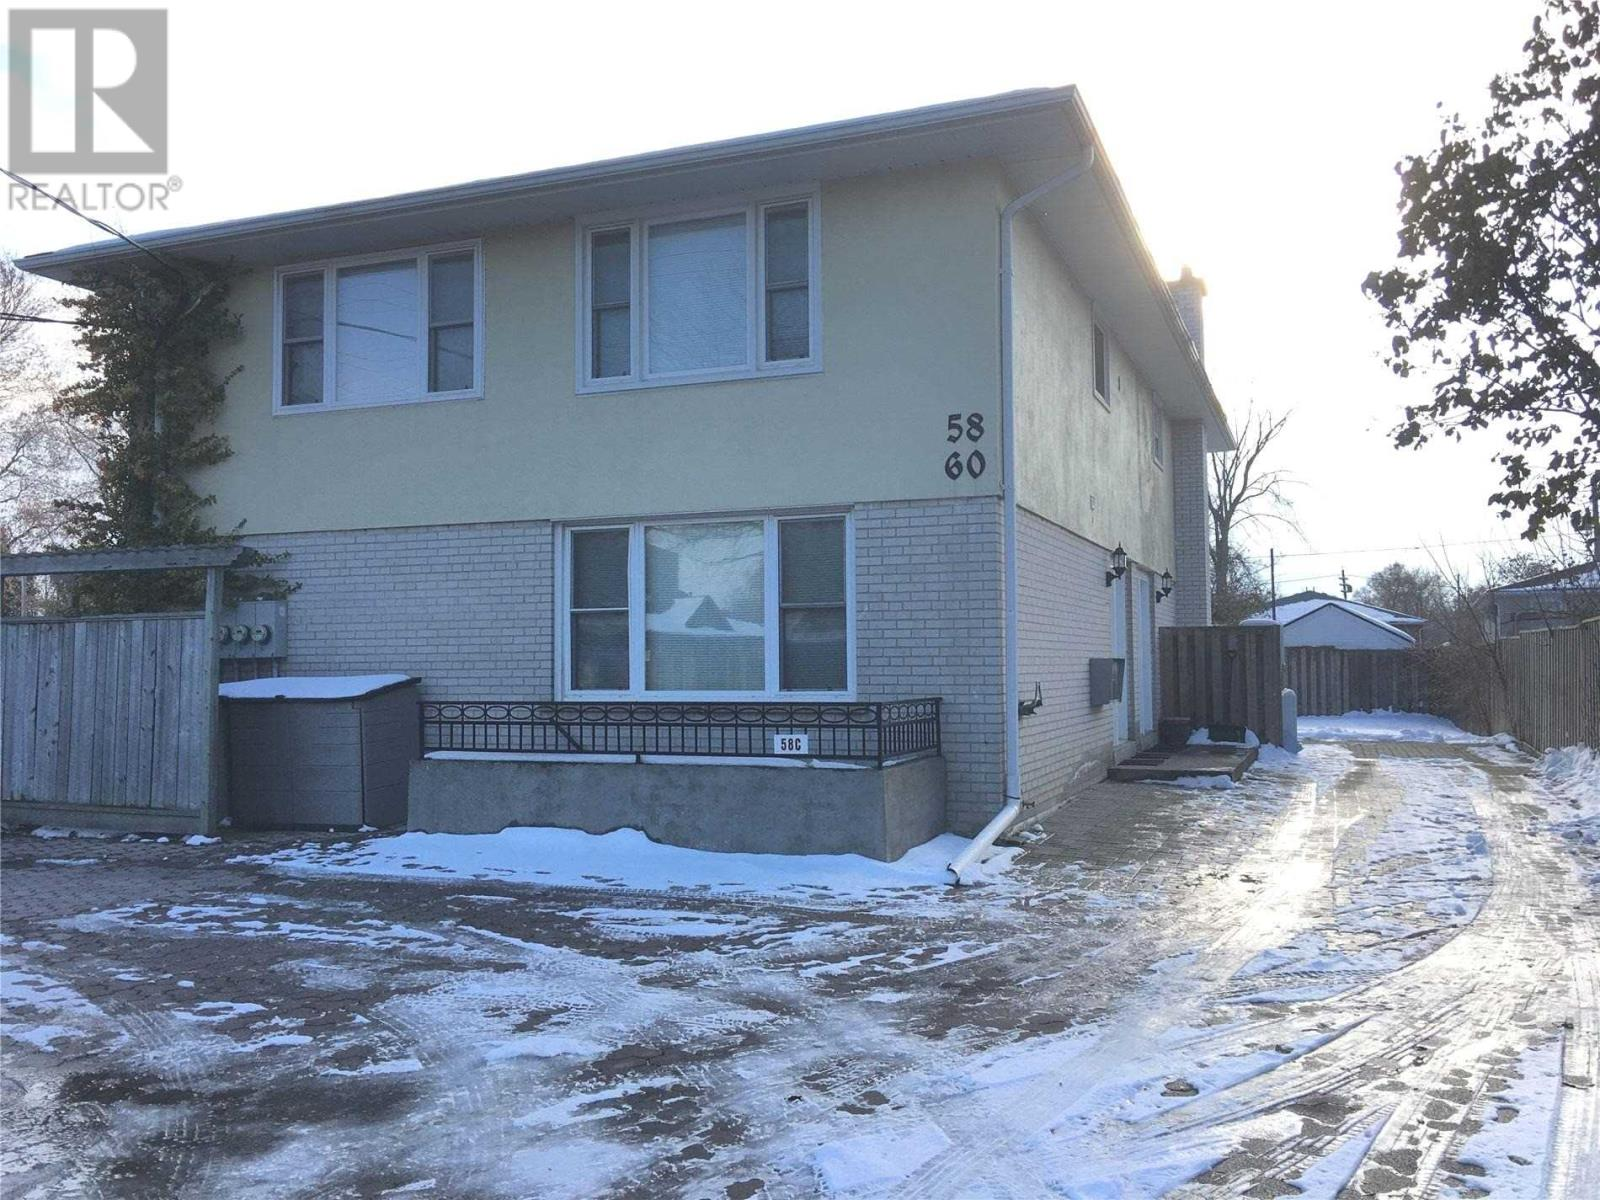 58 & 60 Queen St S, Mississauga, Ontario  L5M 1K4 - Photo 1 - W4635302